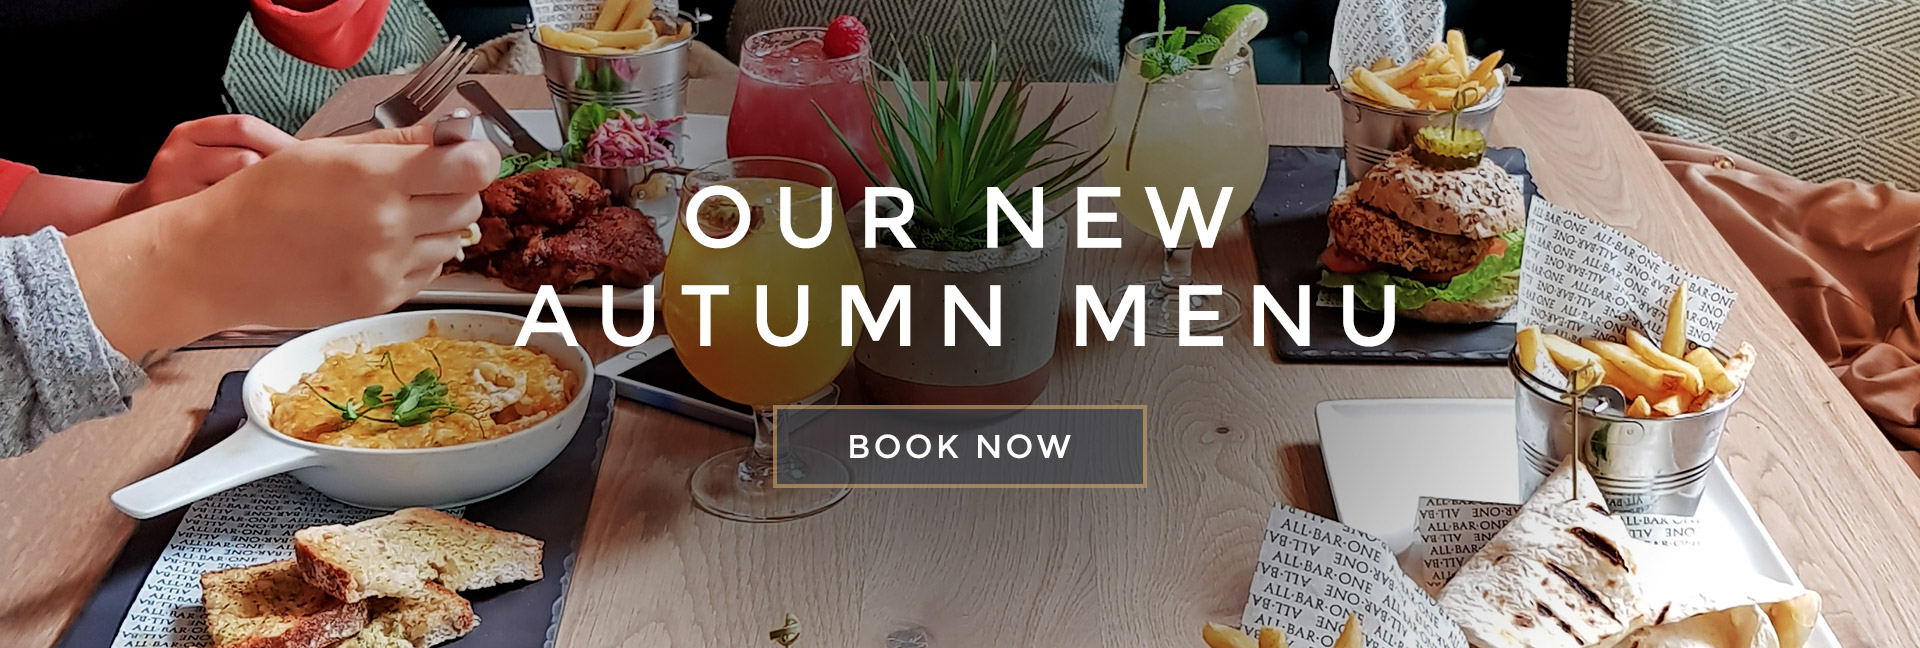 Our new Autumn menu at All Bar One Oxford - Book now